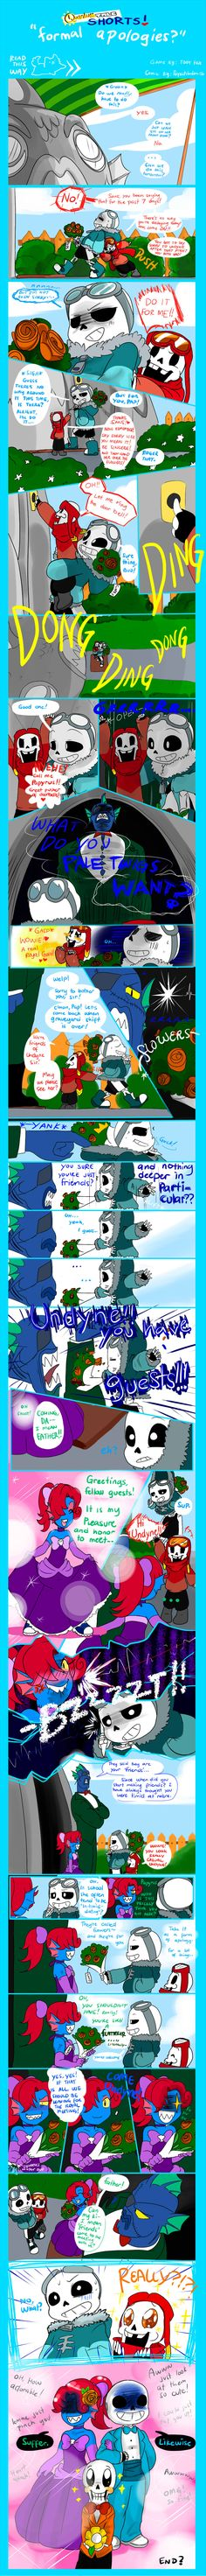 QuantumTale SHORTS: Formal Apologies? by perfectshadow06 on DeviantArt